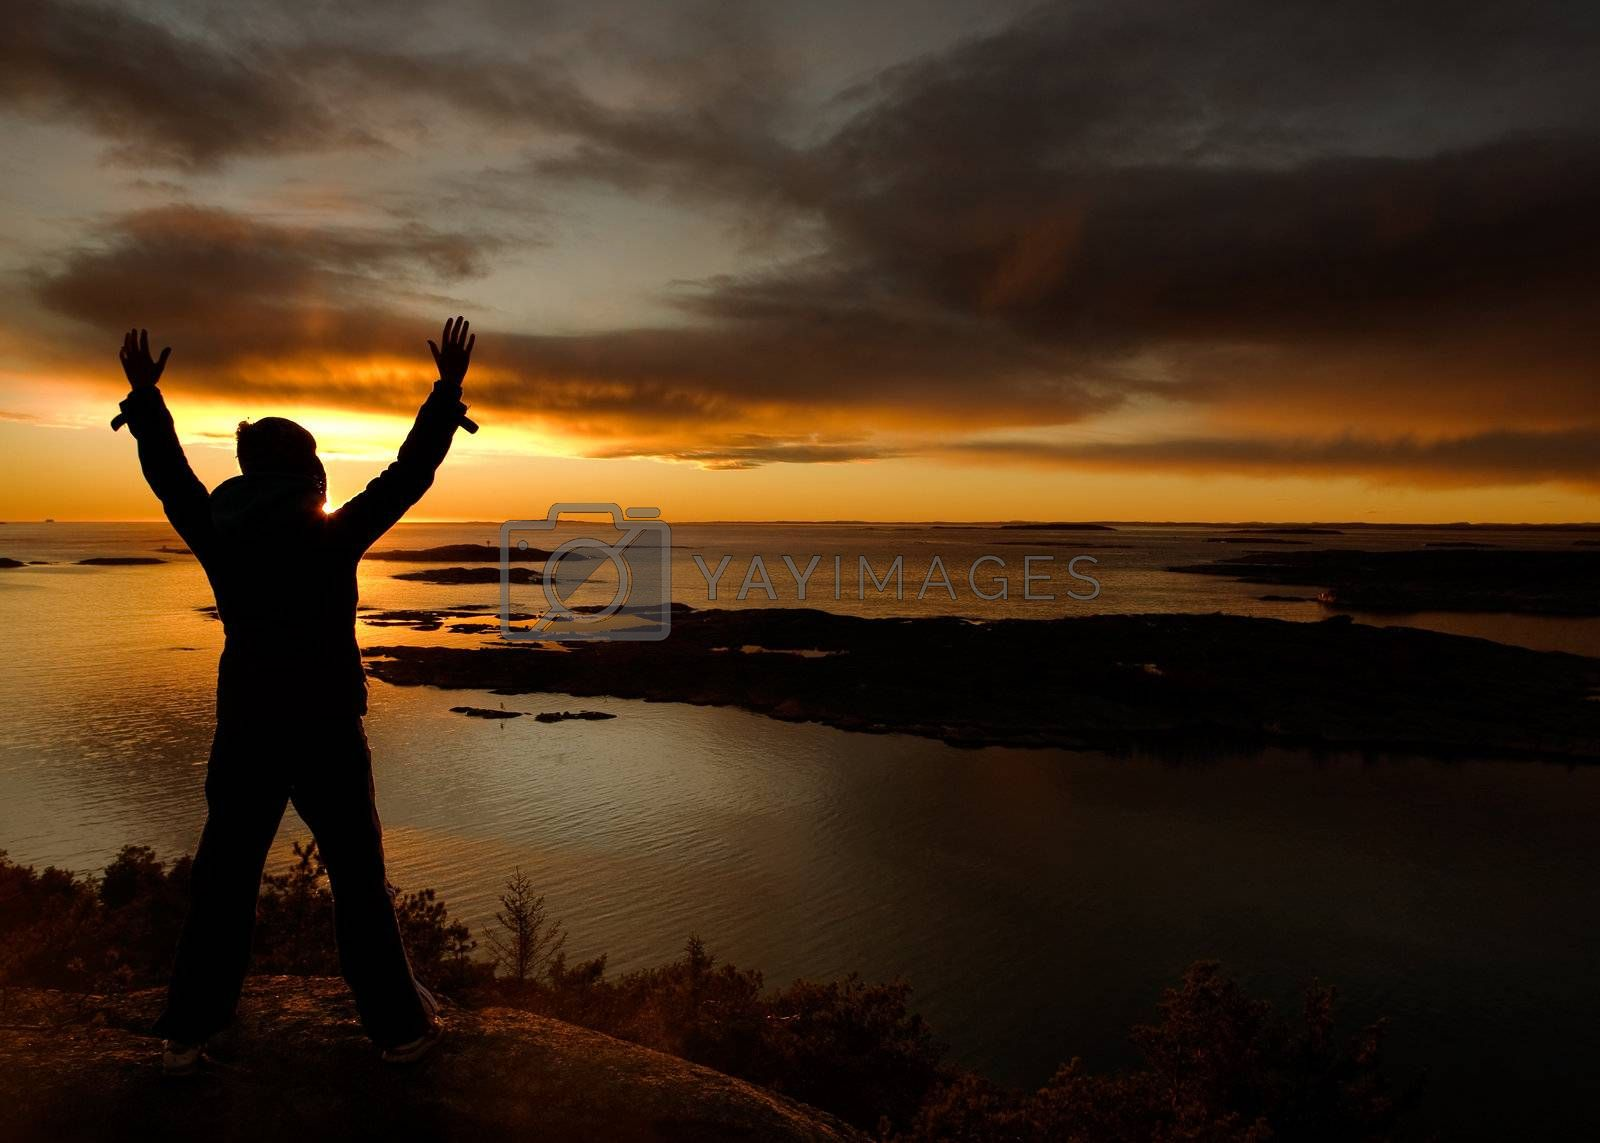 A person standing by the ocean raising their arms in celebration